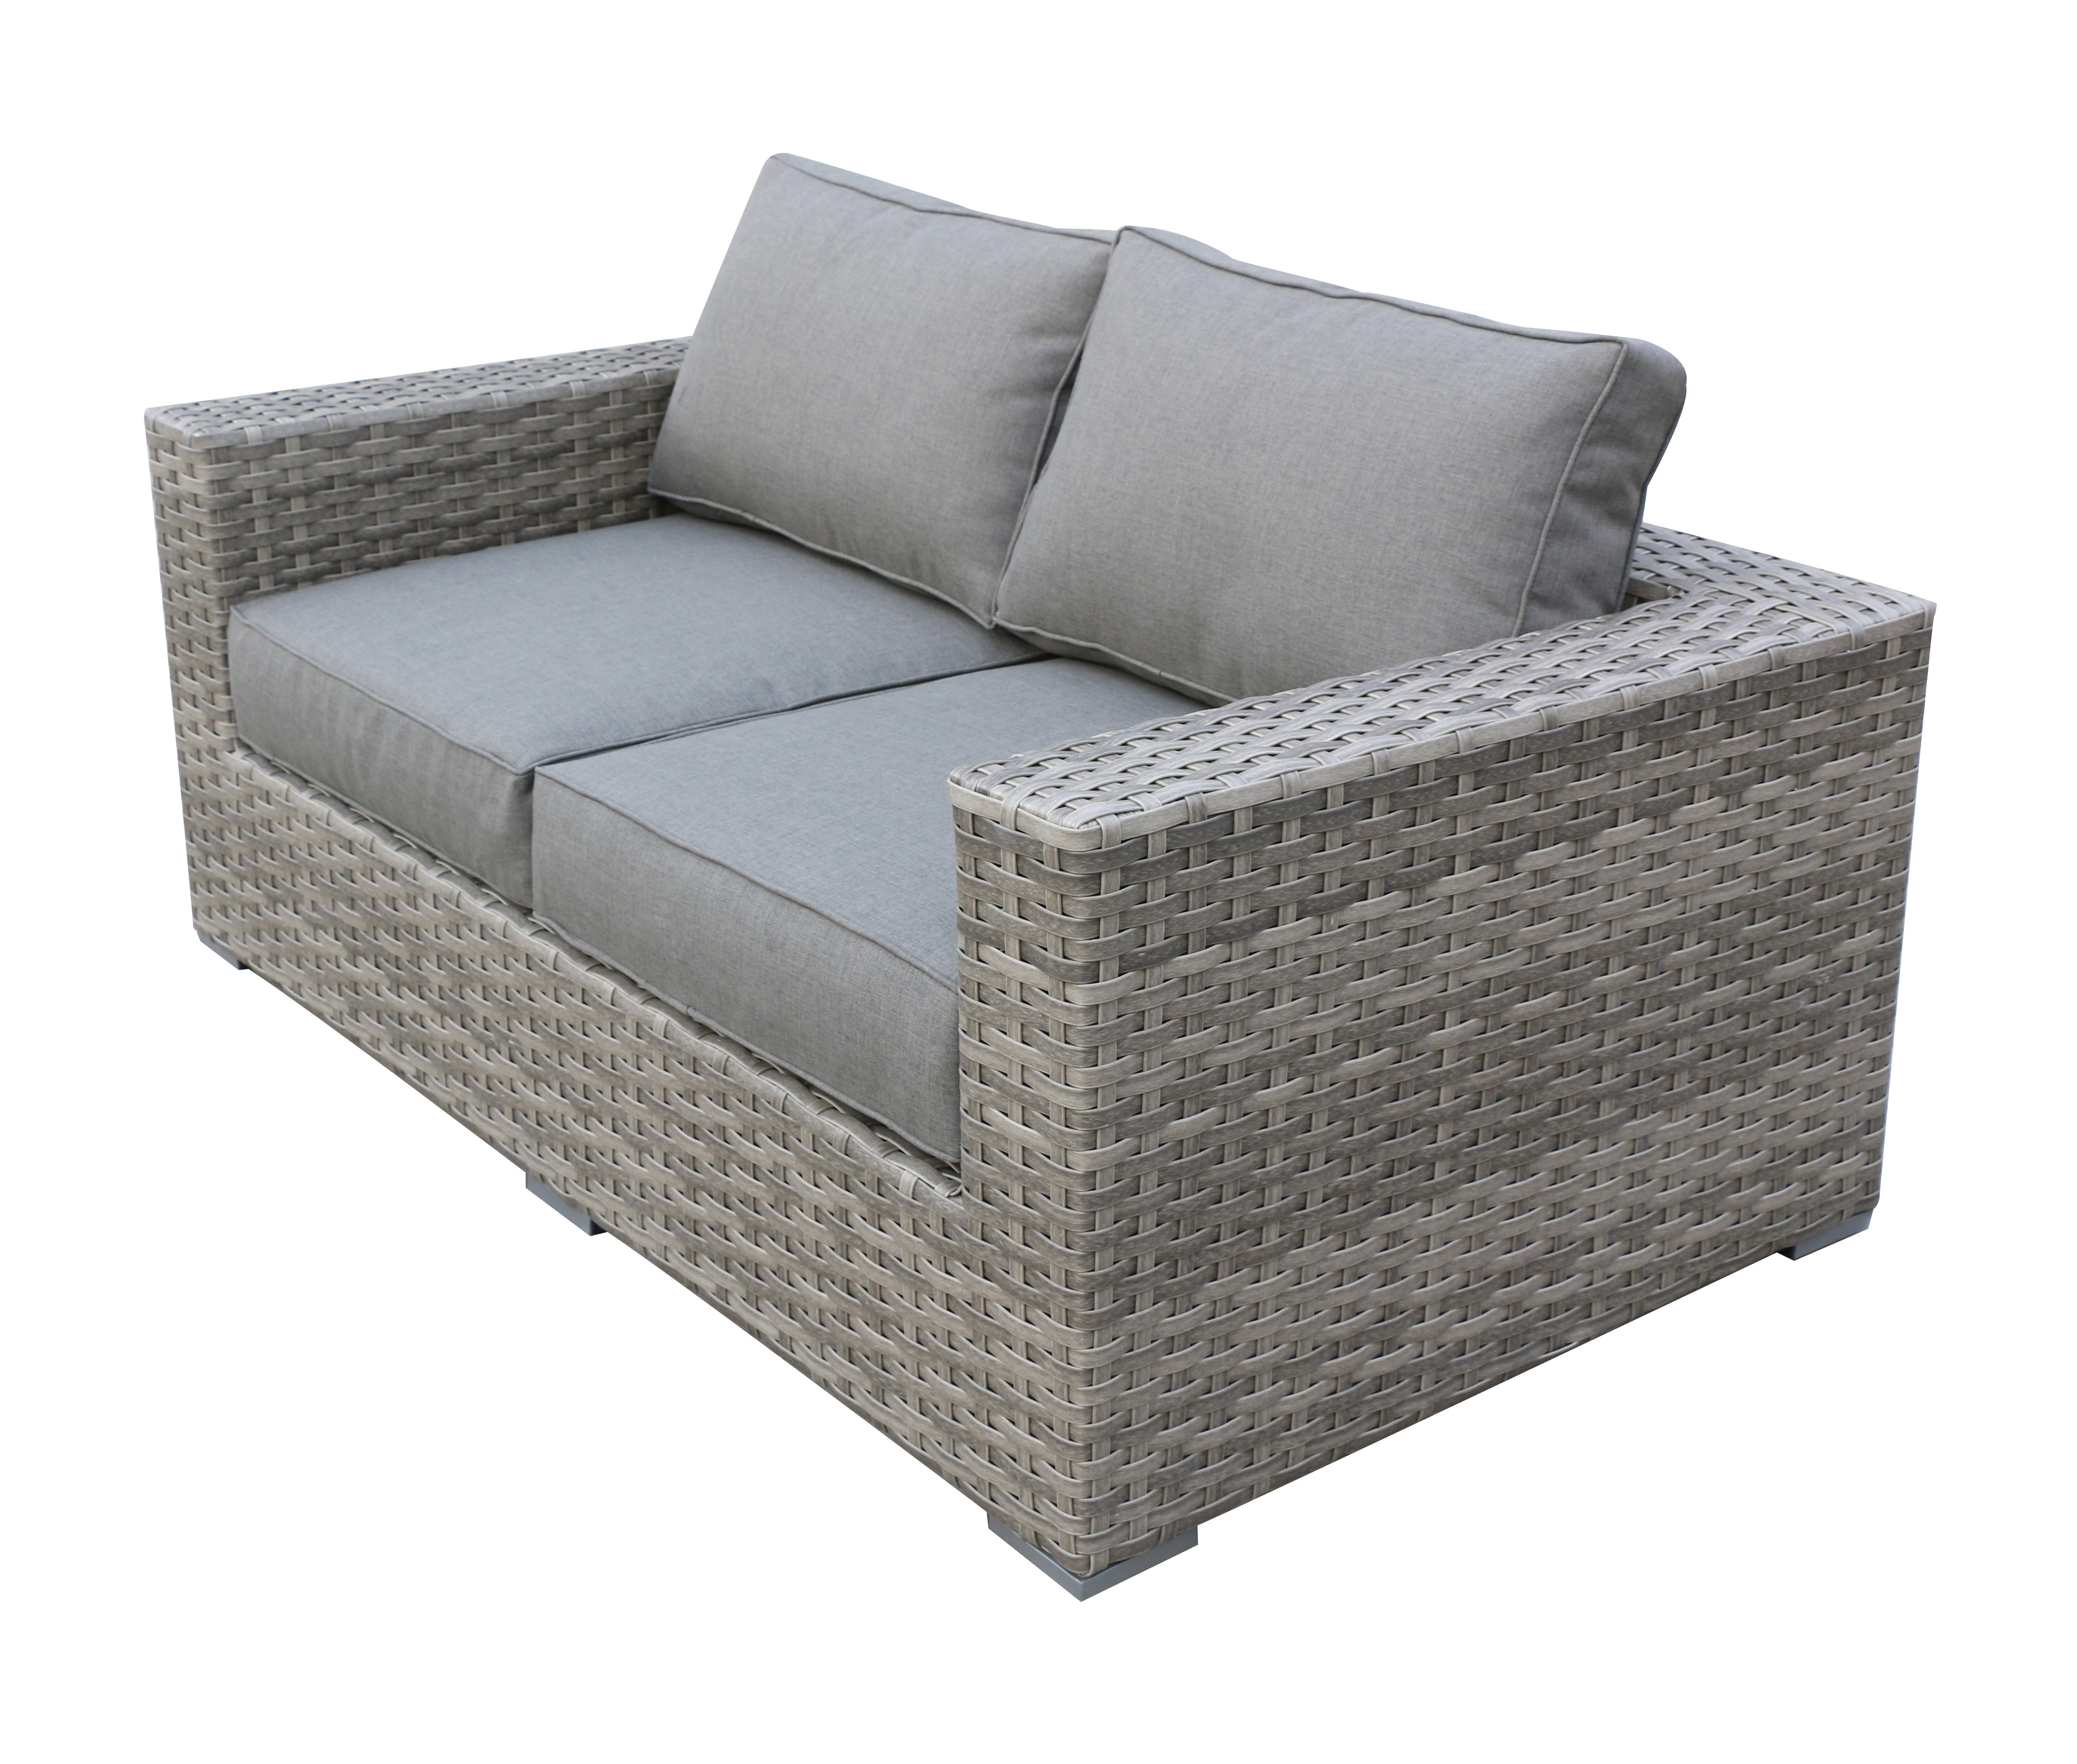 Karan Wicker Patio Loveseats With Regard To Well Known Kaiser Love Seat With Cushion (View 9 of 20)